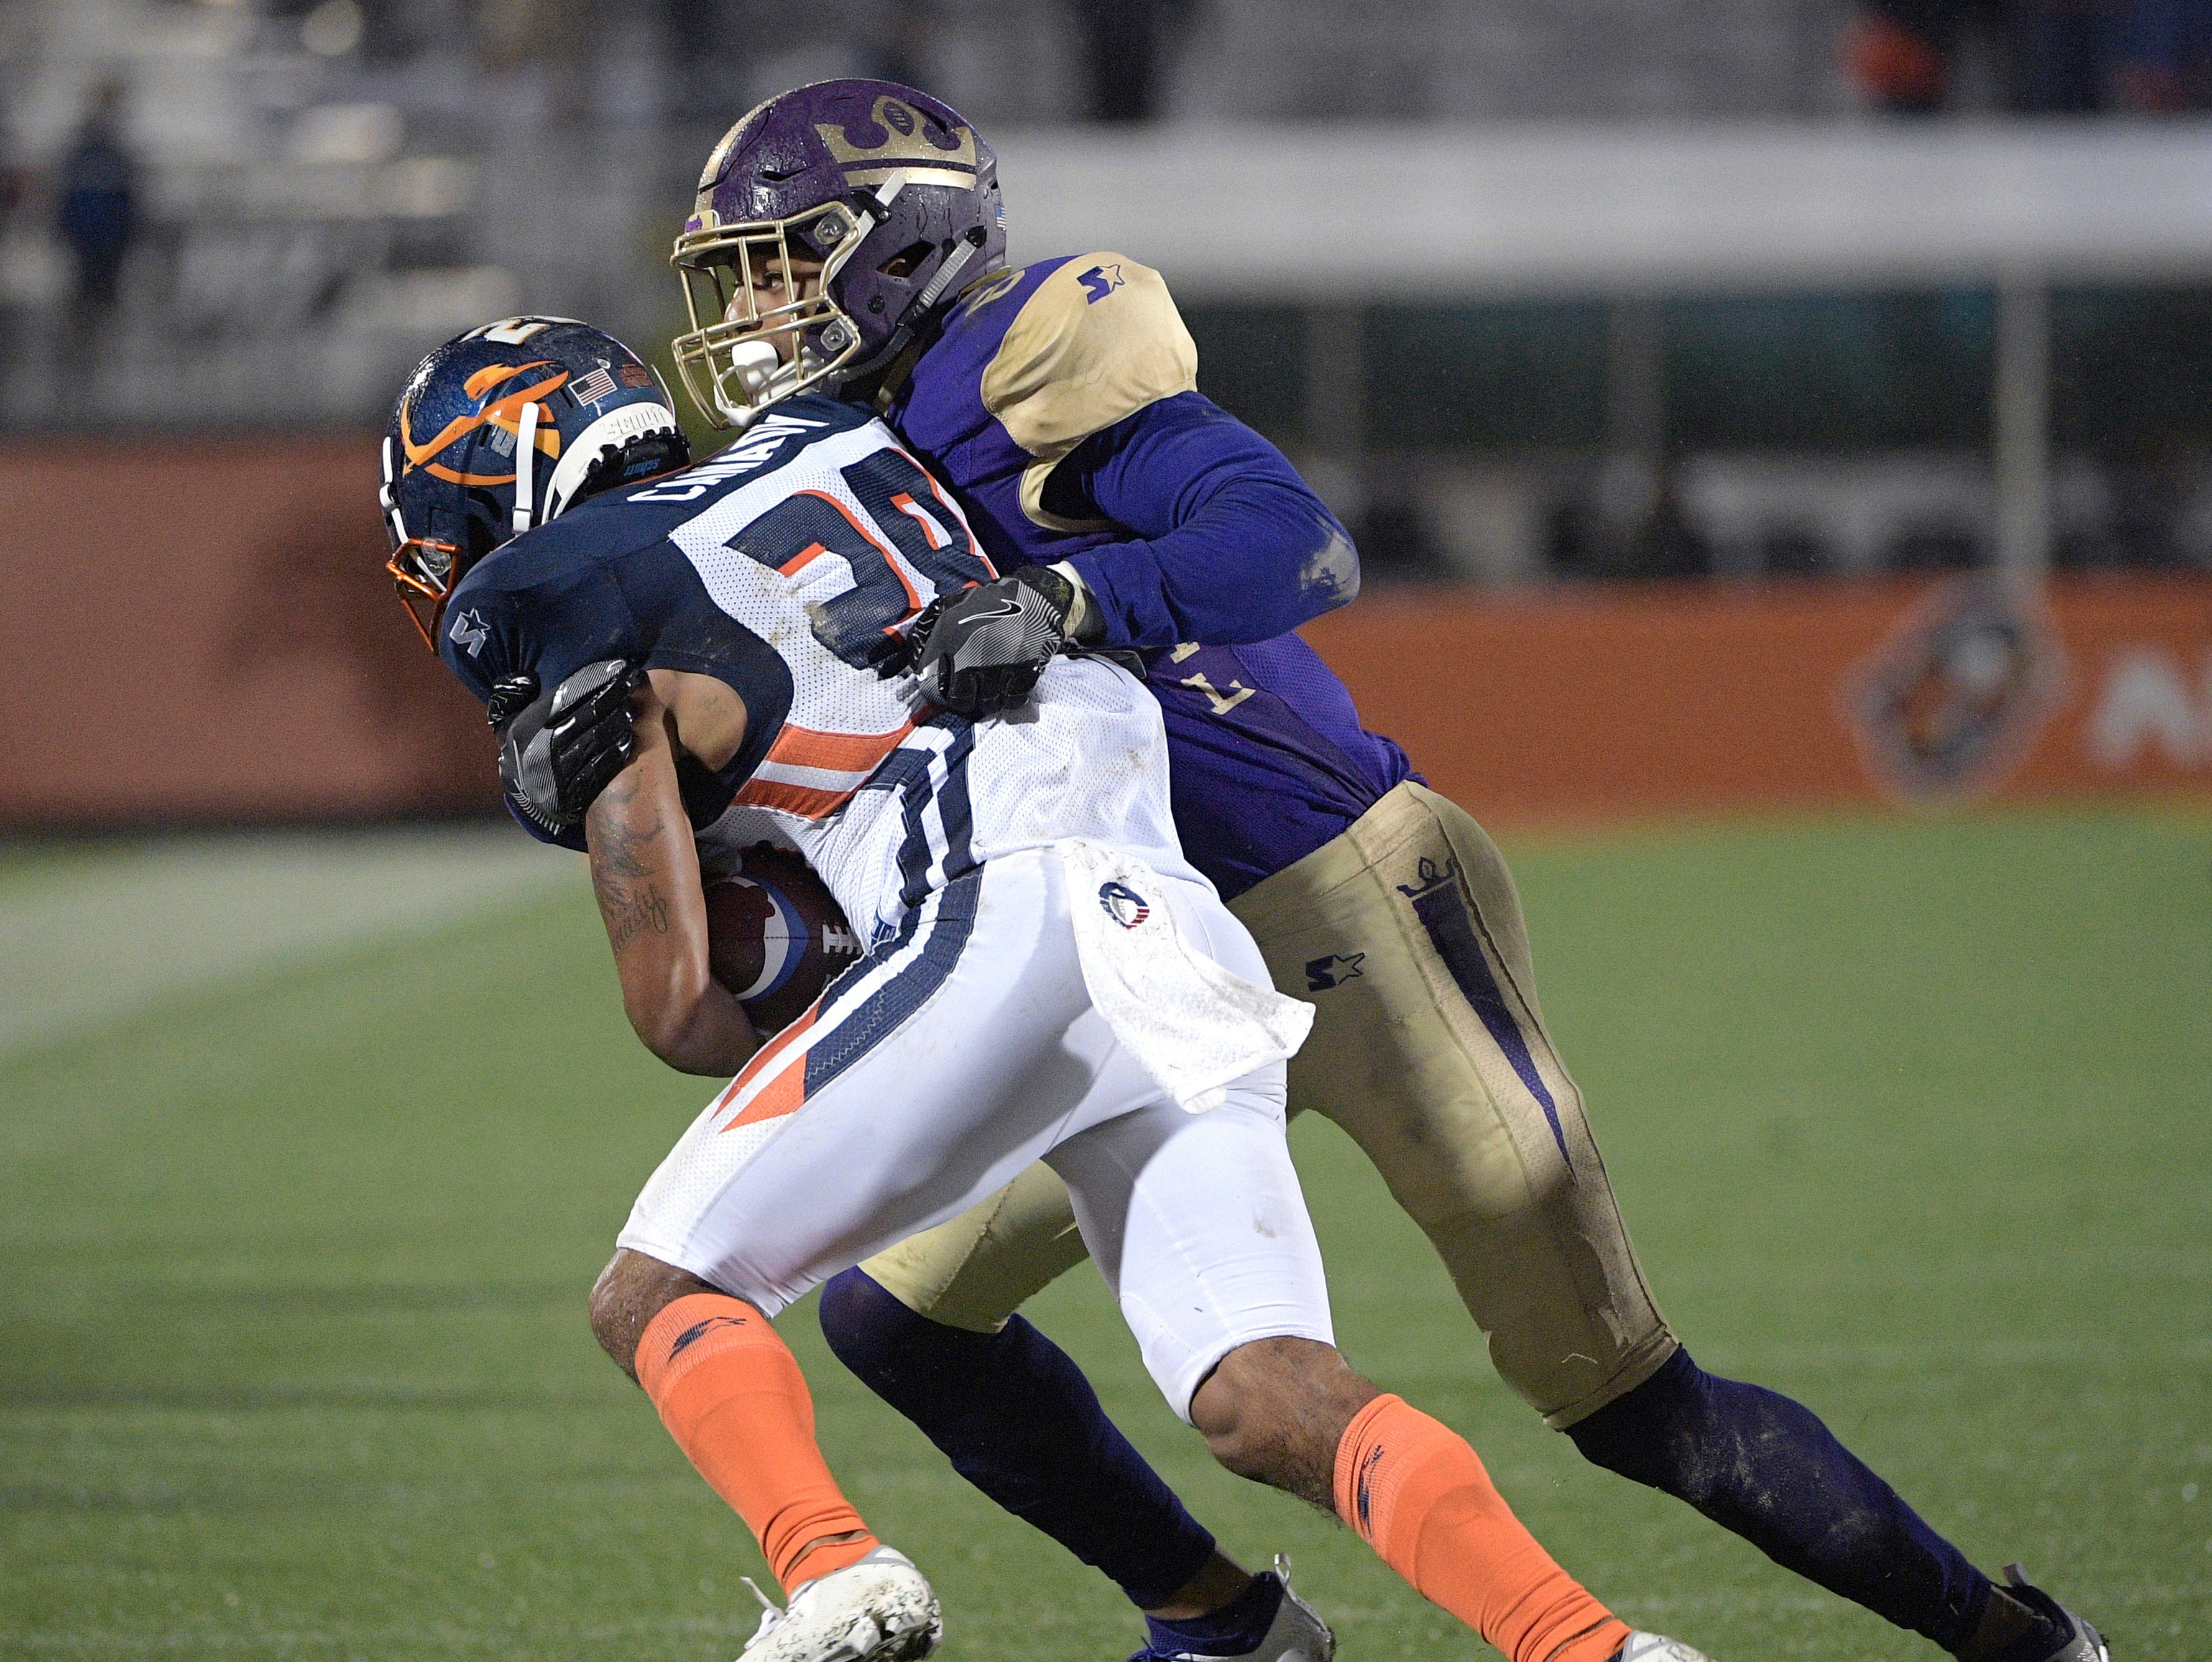 Orlando Apollos defensive back Bryce Canady (28) is tackled by Atlanta Legends receiver Bug Howard (84) after intercepting a pass during the second half of an Alliance of American Football game Saturday, Feb. 9, 2019, in Orlando, Fla. (AP Photo/Phelan M. Ebenhack)